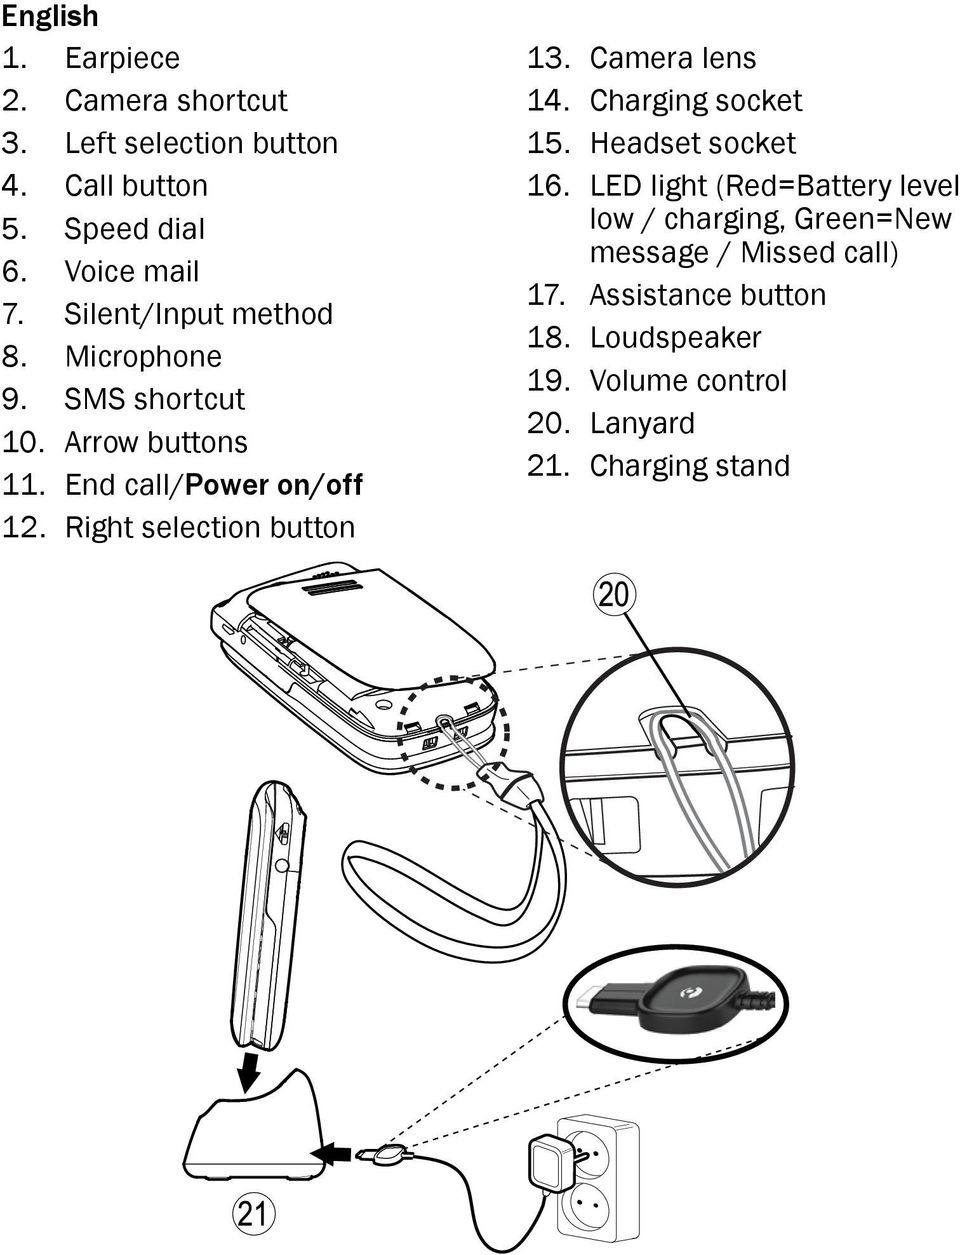 Right selection button 13. Camera lens 14. Charging socket 15. Headset socket 16.